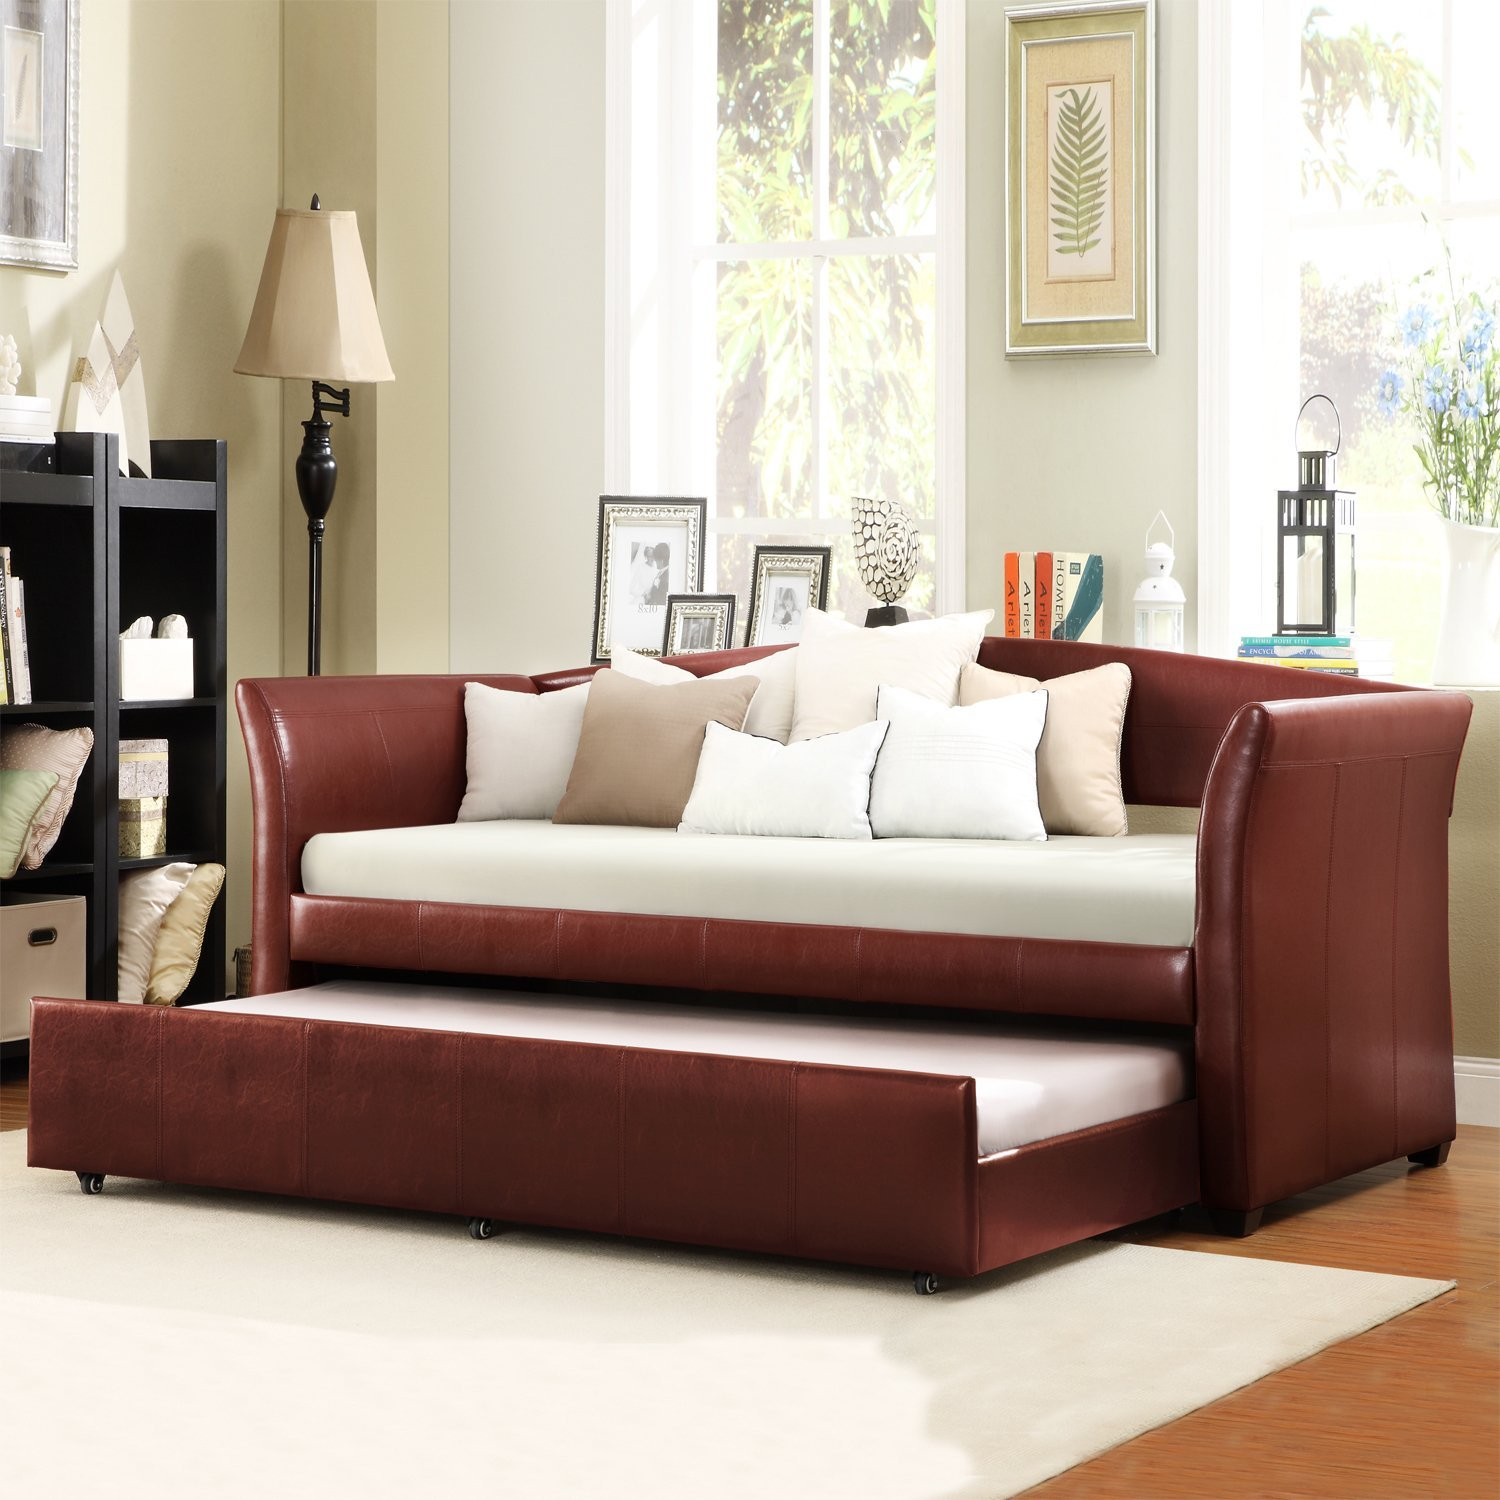 Metro Shop TRIBECCA HOME Deco Wine Red Faux Leather Daybed with Trundle-Deco Wine Red Vinyl Daybed with Trundle